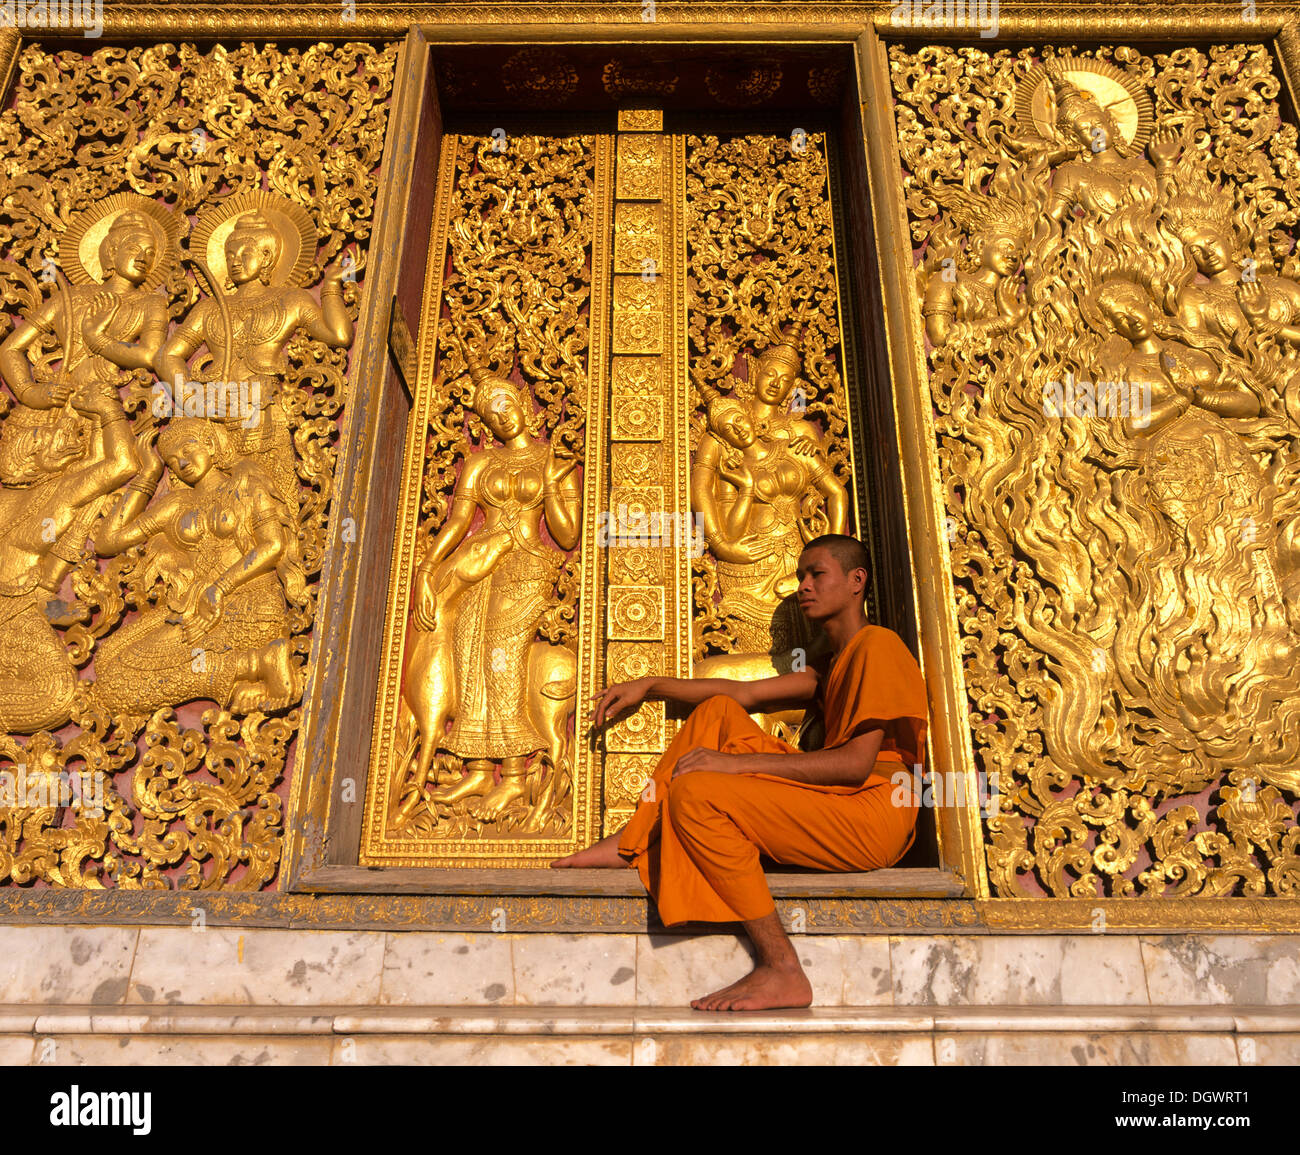 Golden reliefs, monk at the entrance to the Carriage House, Wat Xieng Tong or Vat Xienthong, Luang Prabang - Stock Image